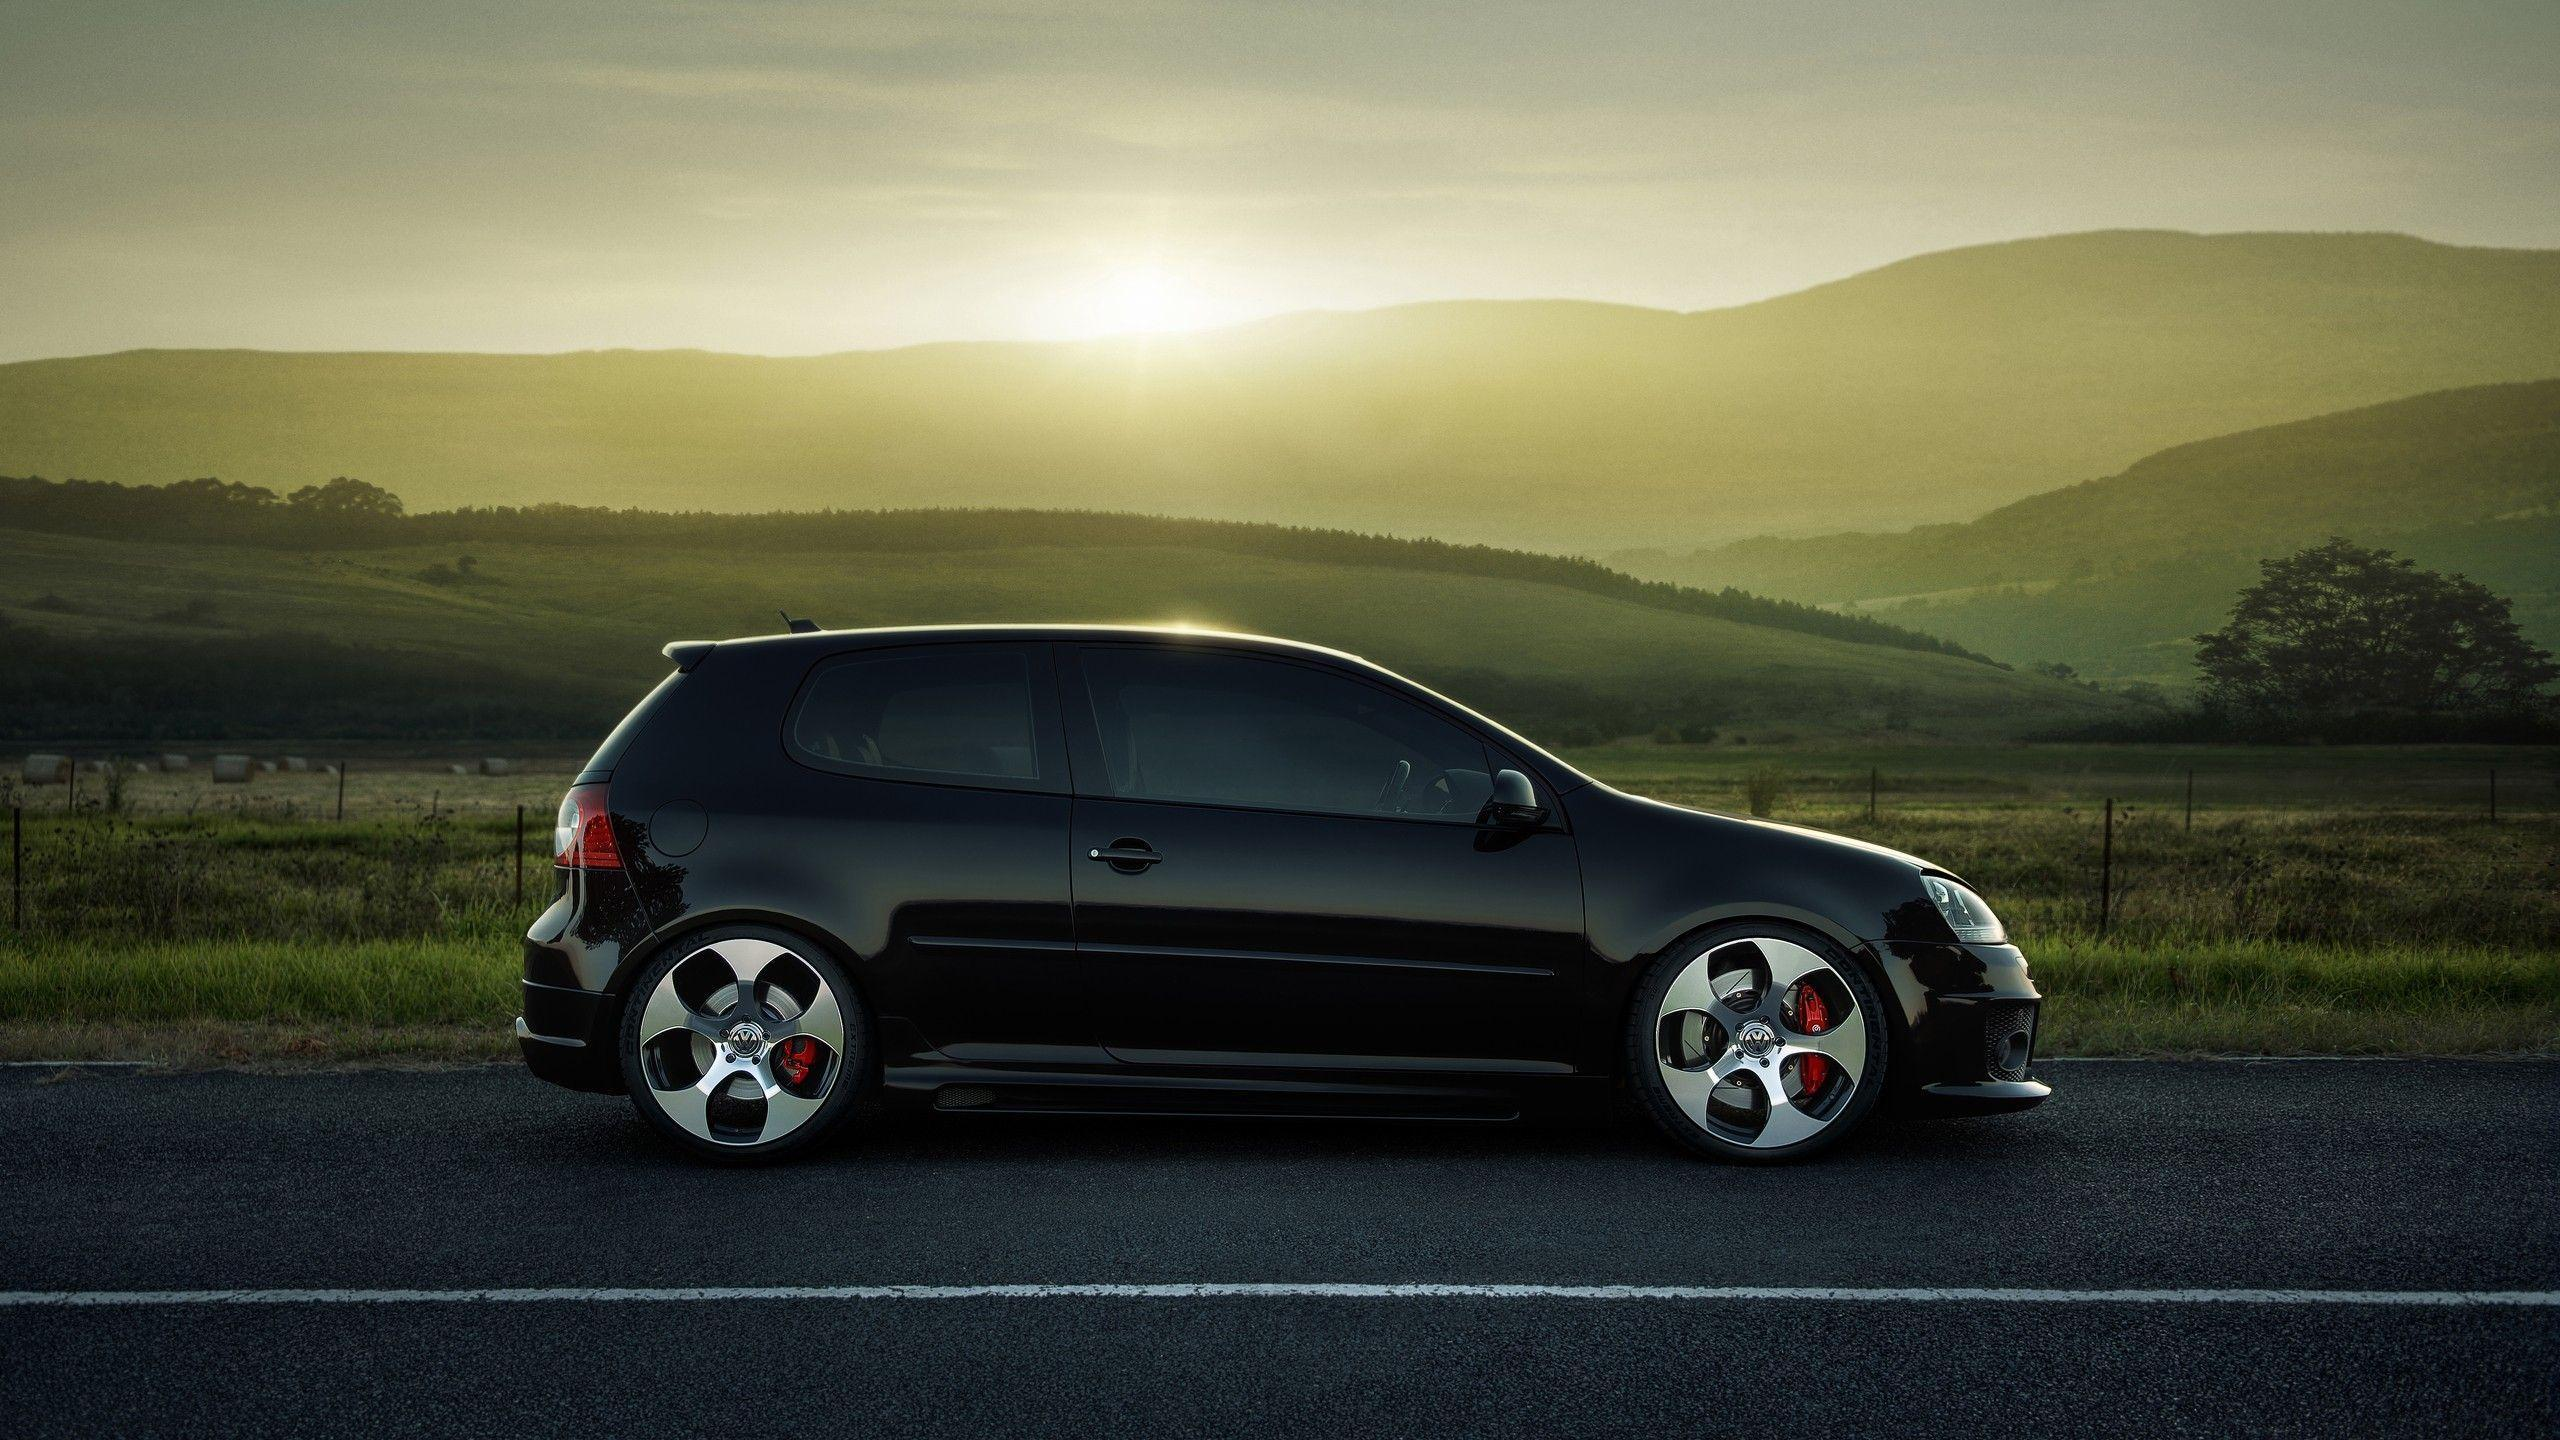 VW Golf GTI Wallpaper